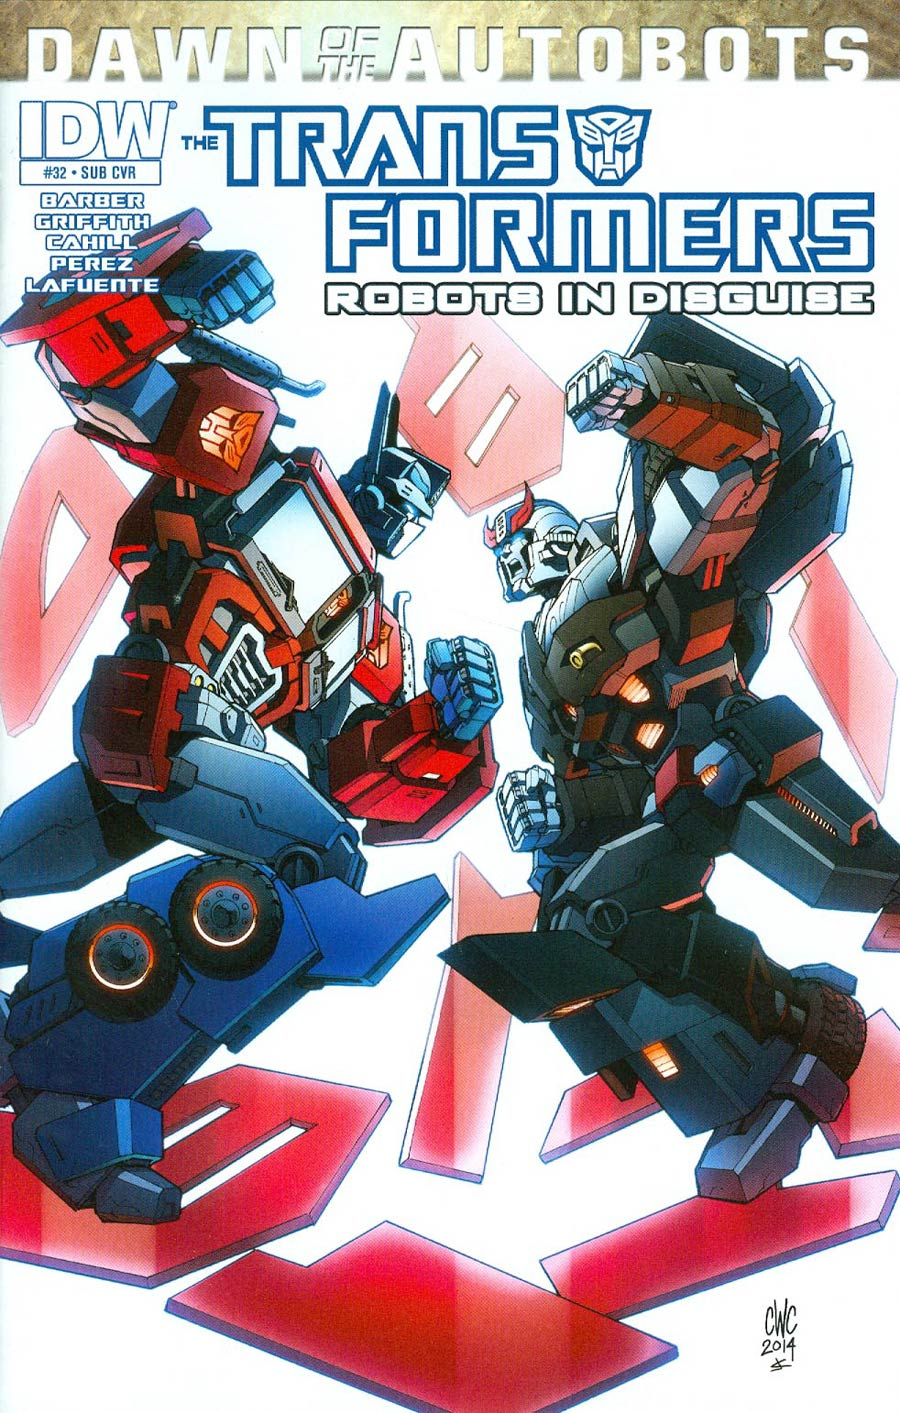 Transformers Robots In Disguise #32 Cover B Variant Casey W Coller Subscription Cover (Dawn Of The Autobots Tie-In)